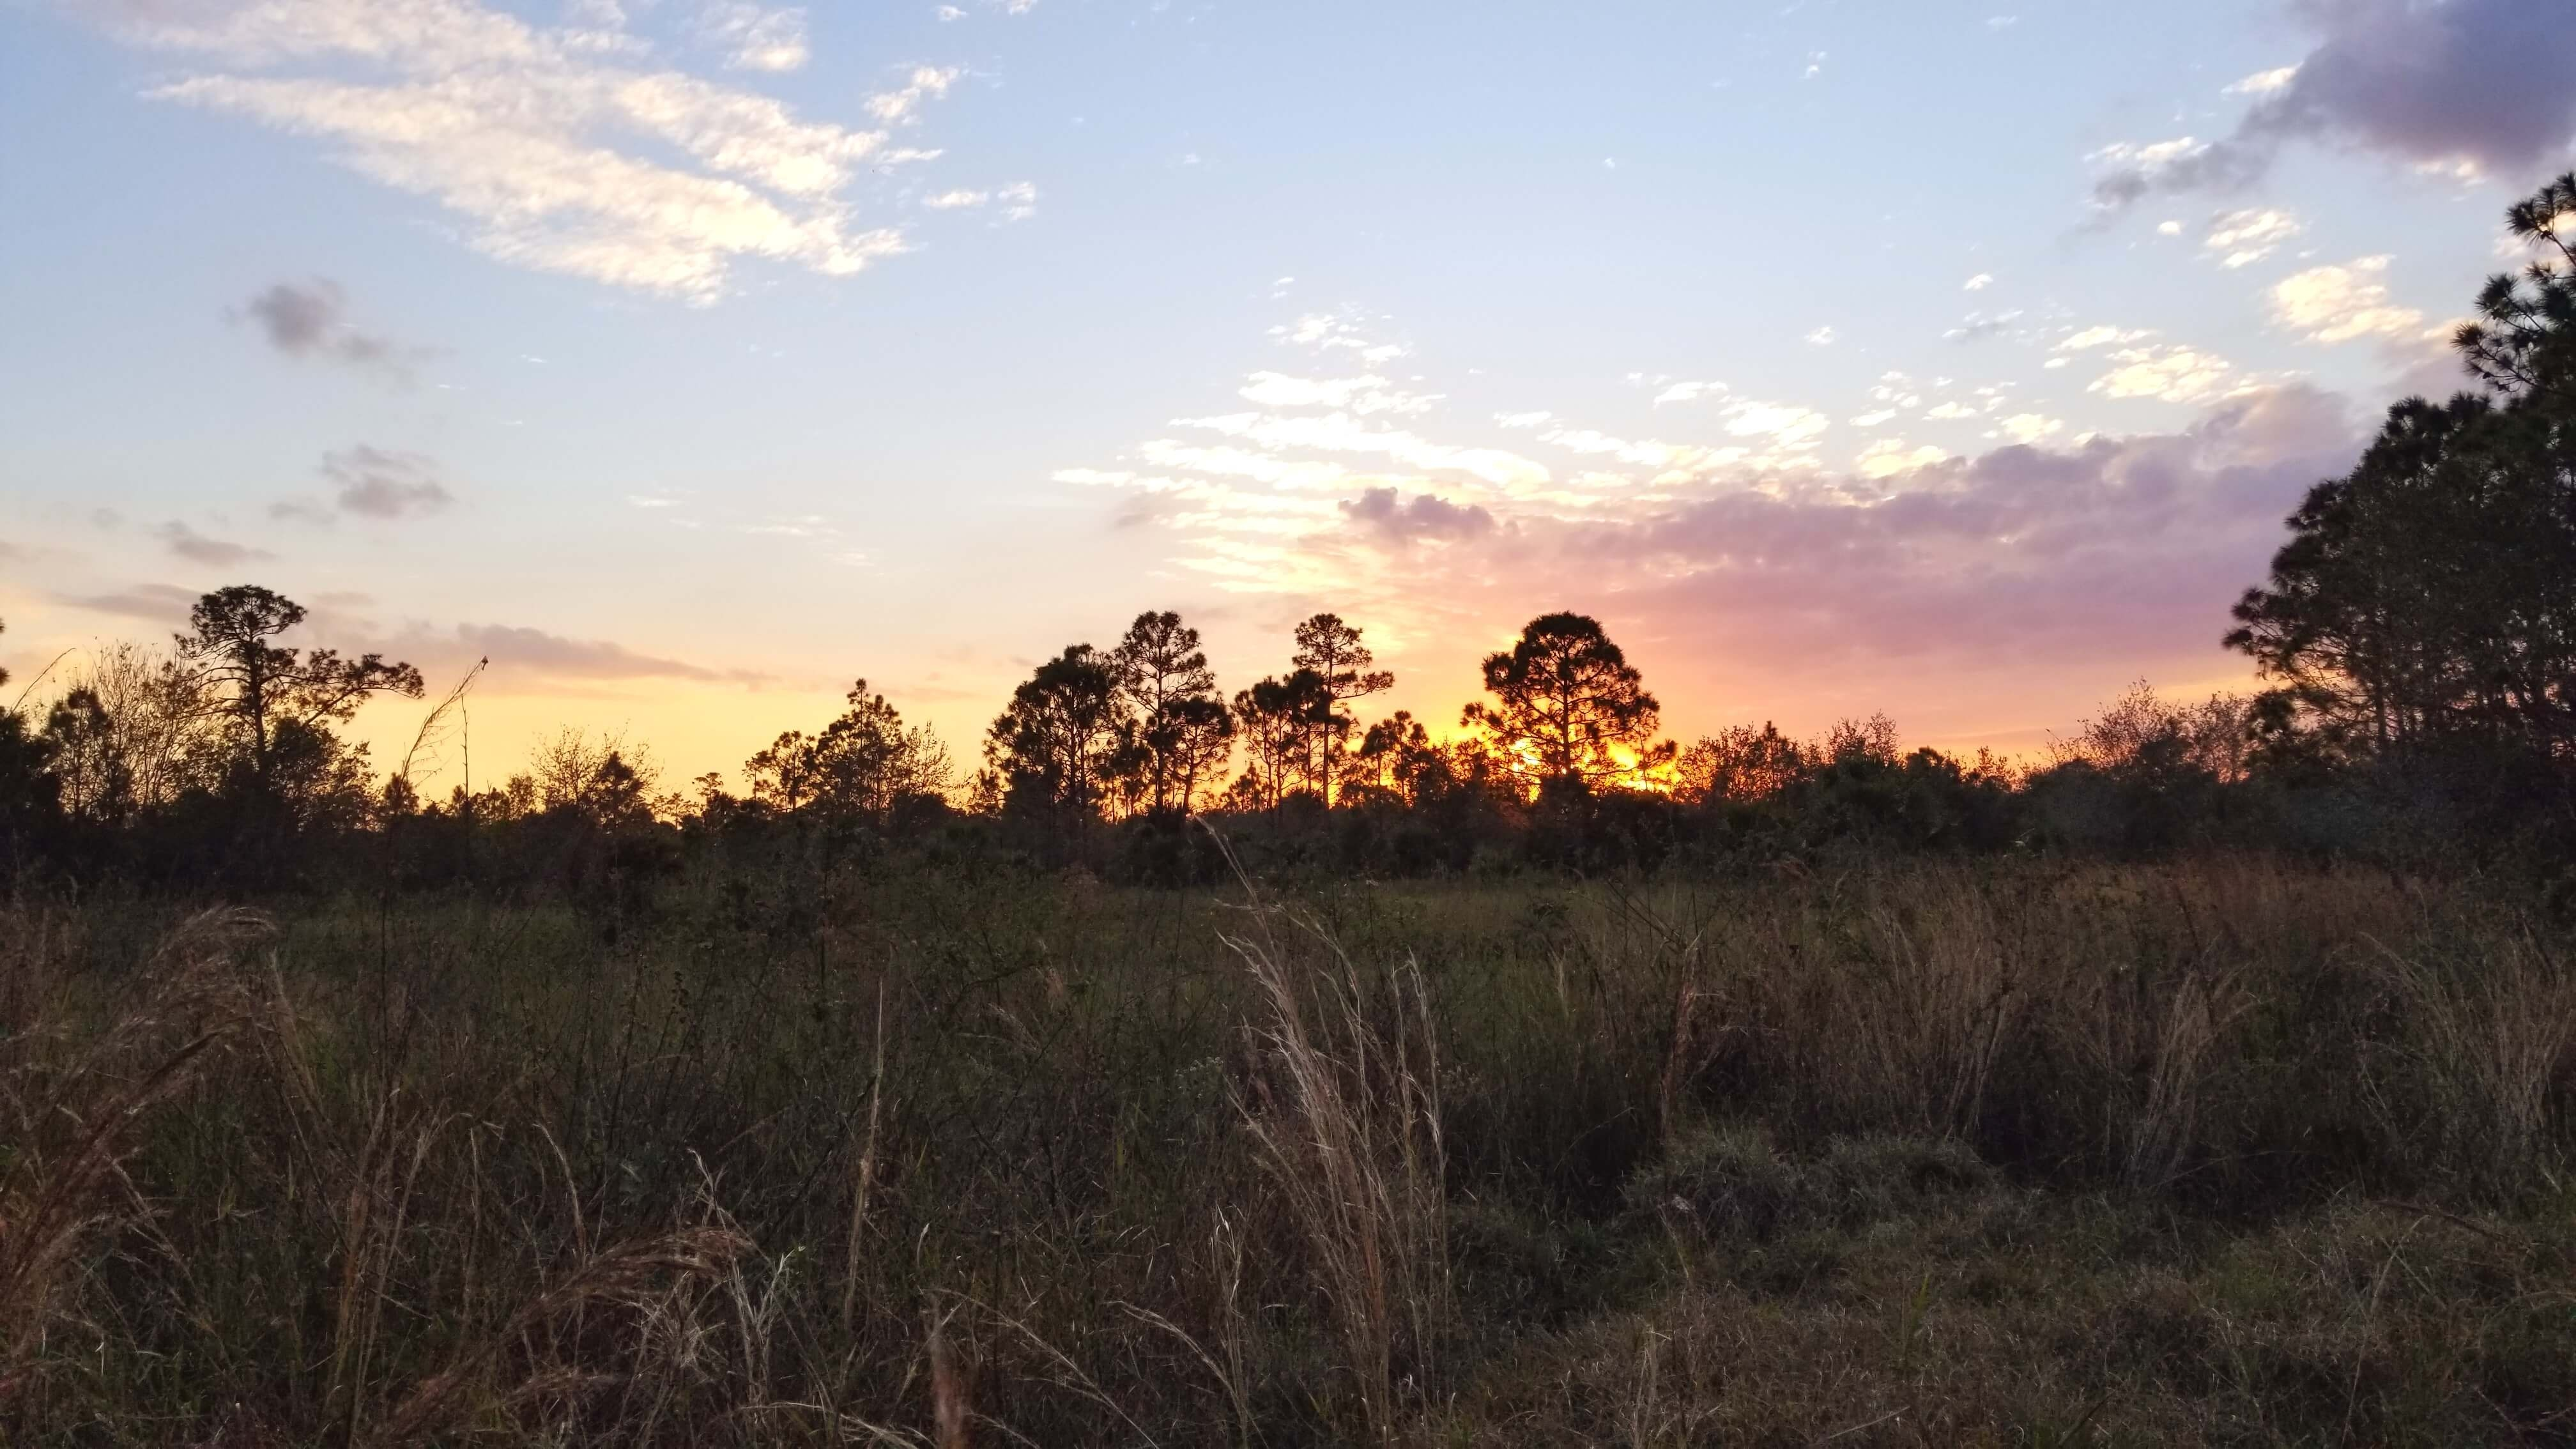 Sunset in Wild Florida Cypress Trees and Palms